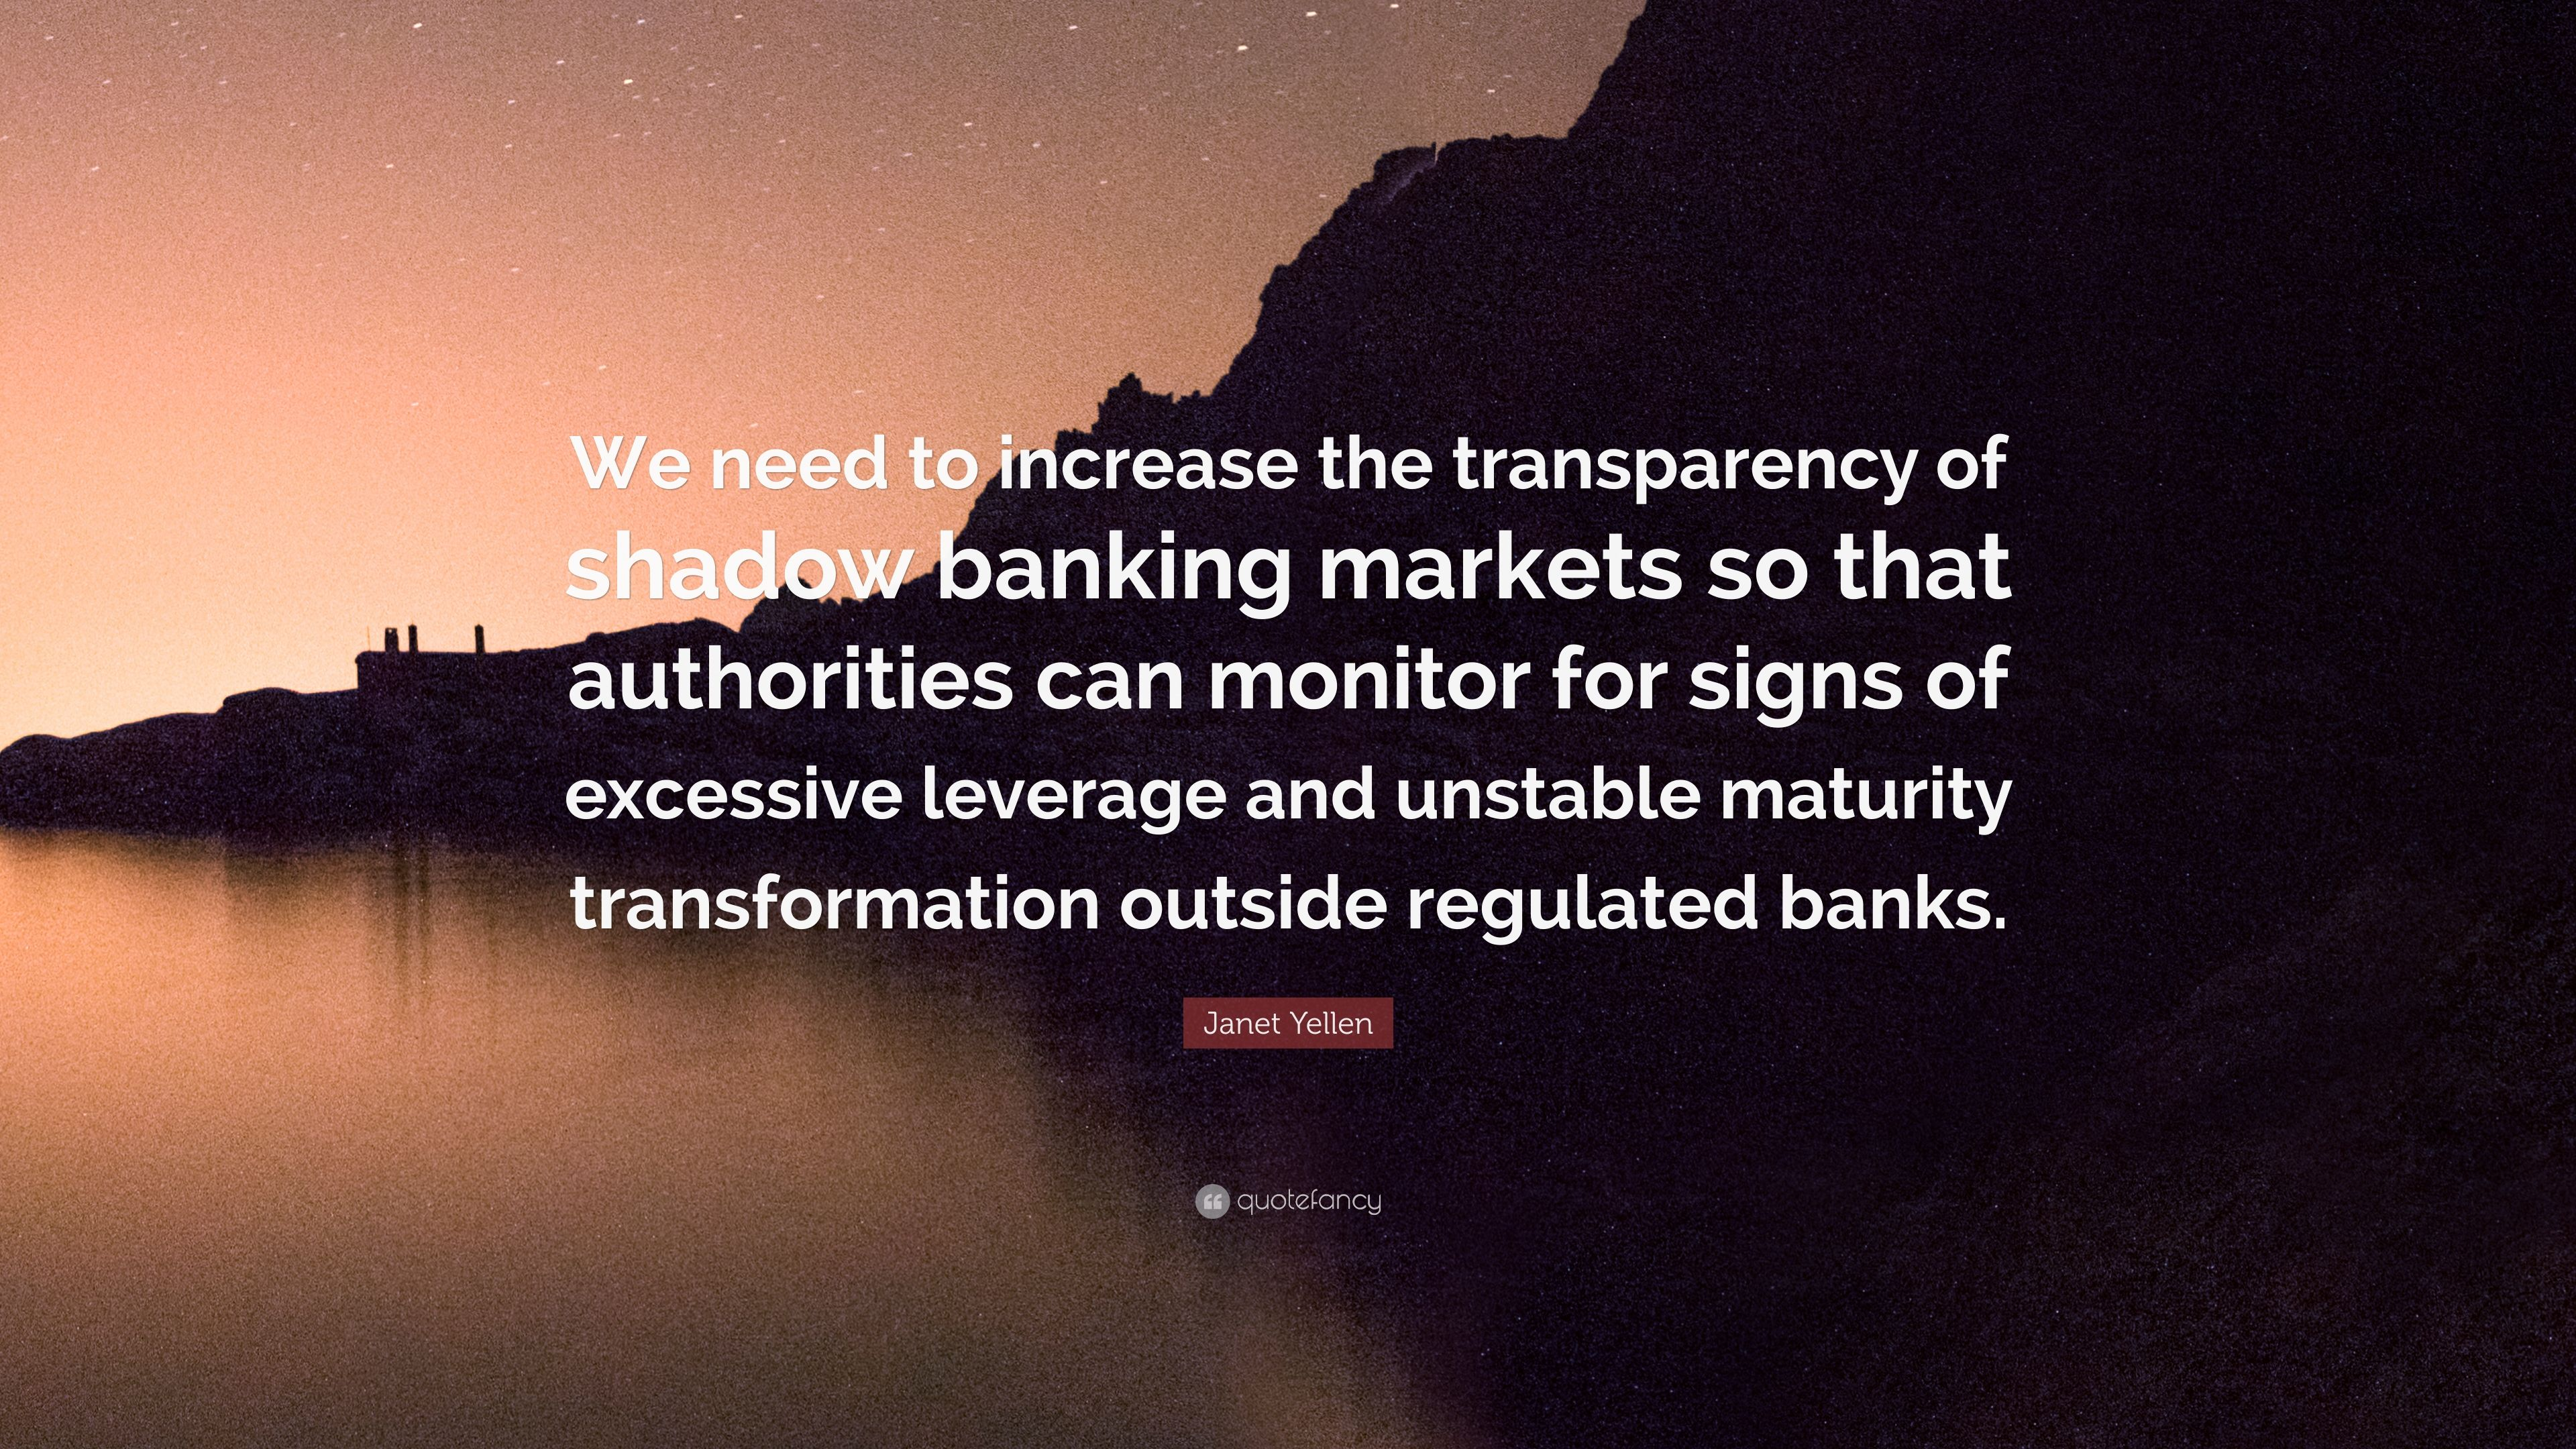 janet yellen quote we need to increase the transparency of shadow banking markets so that authorities can monitor for signs of excessive le 7 wallpapers quotefancy shadow banking markets so